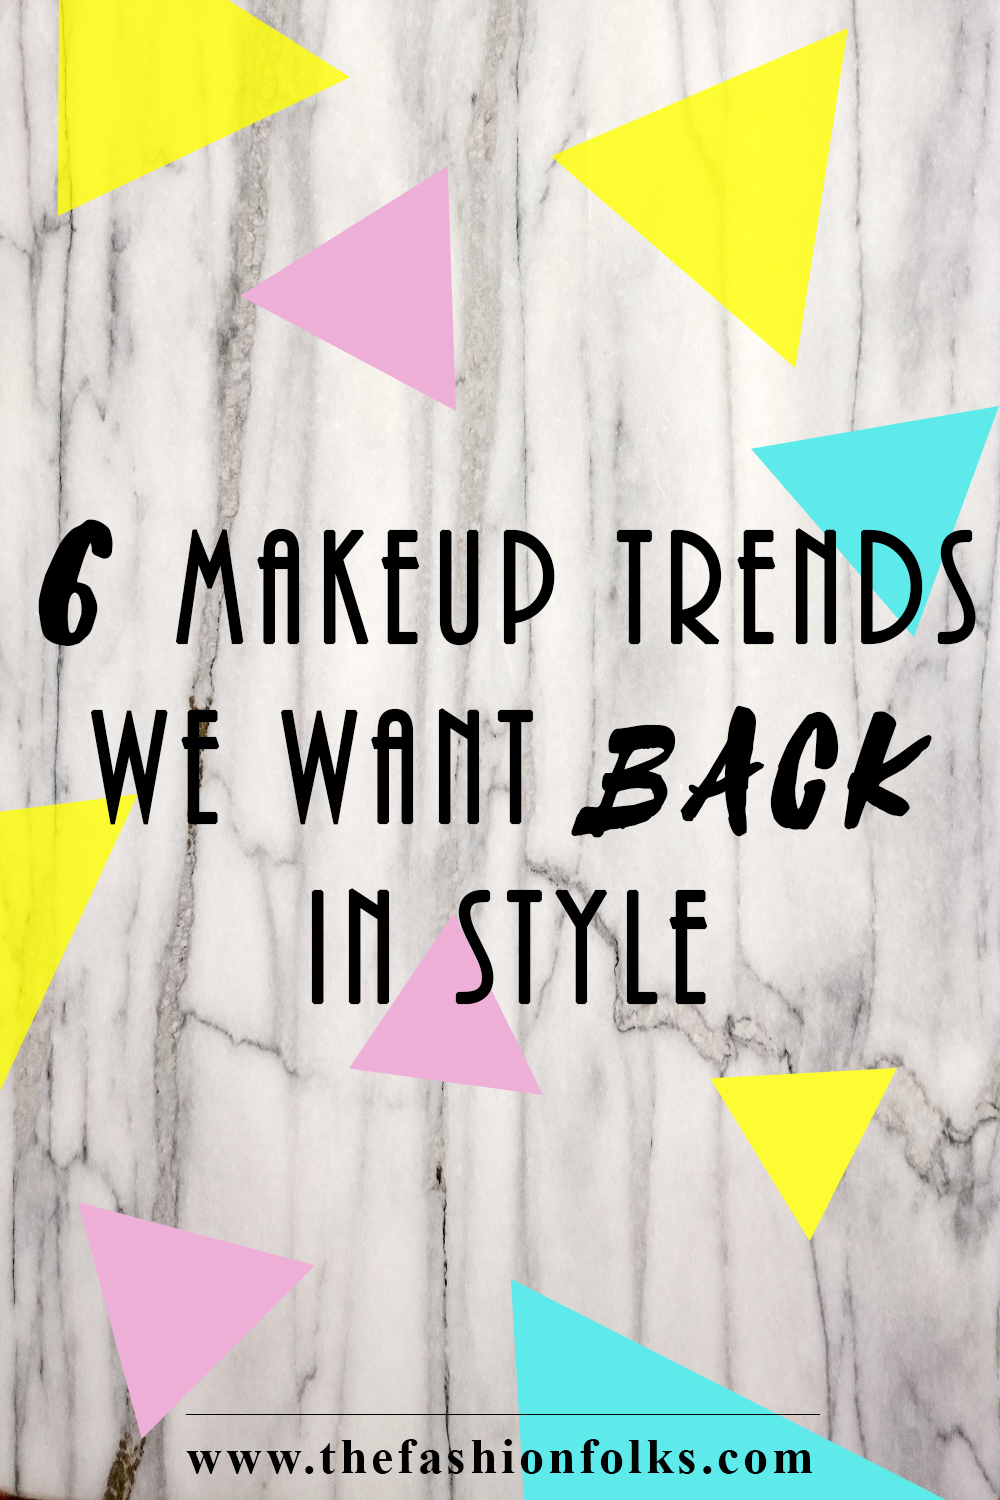 6 makeup trends we want back